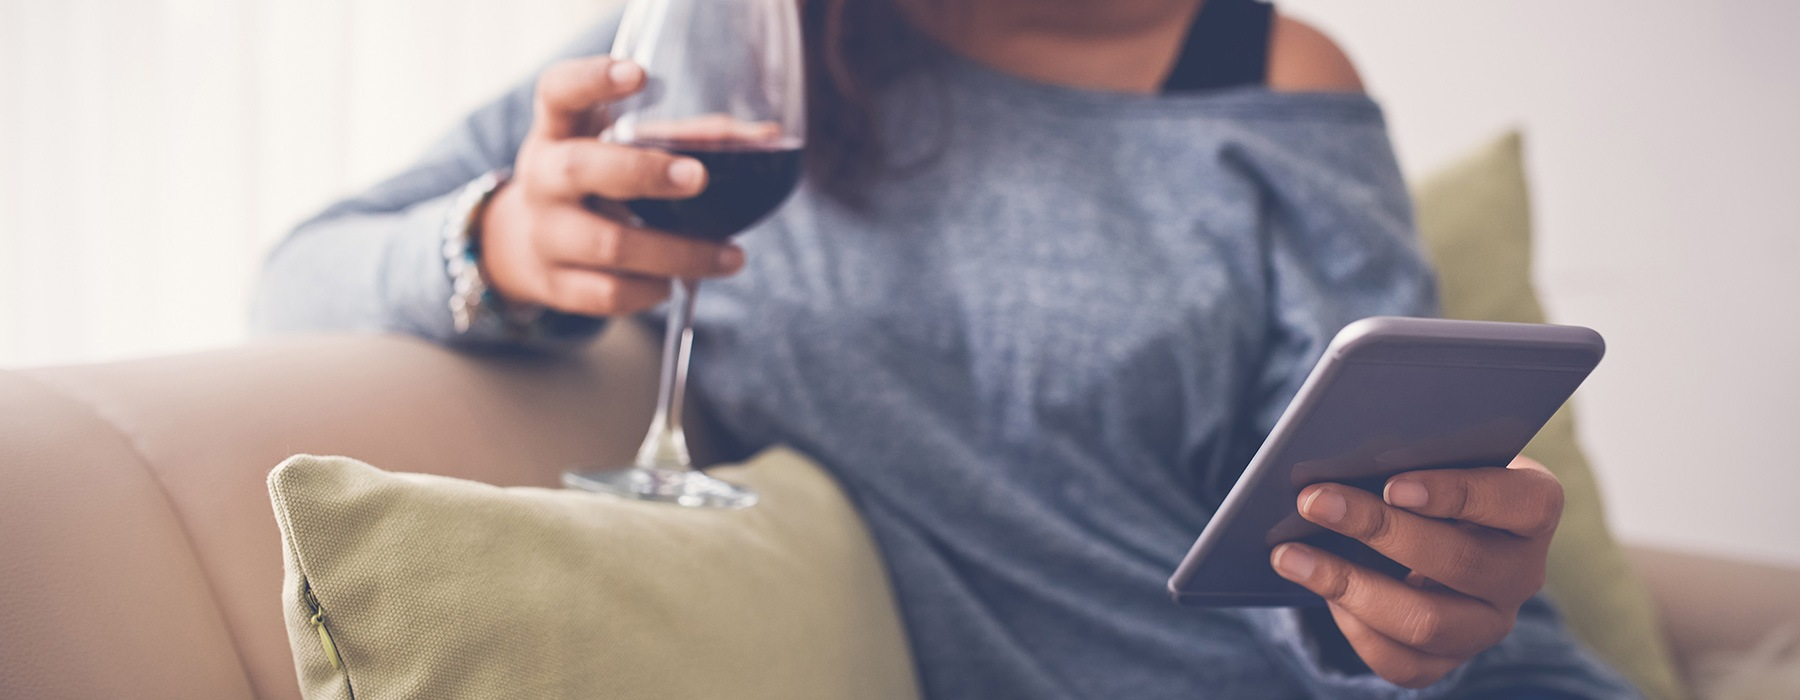 lifestyle image of a woman drinking wine while looking at her mobile device